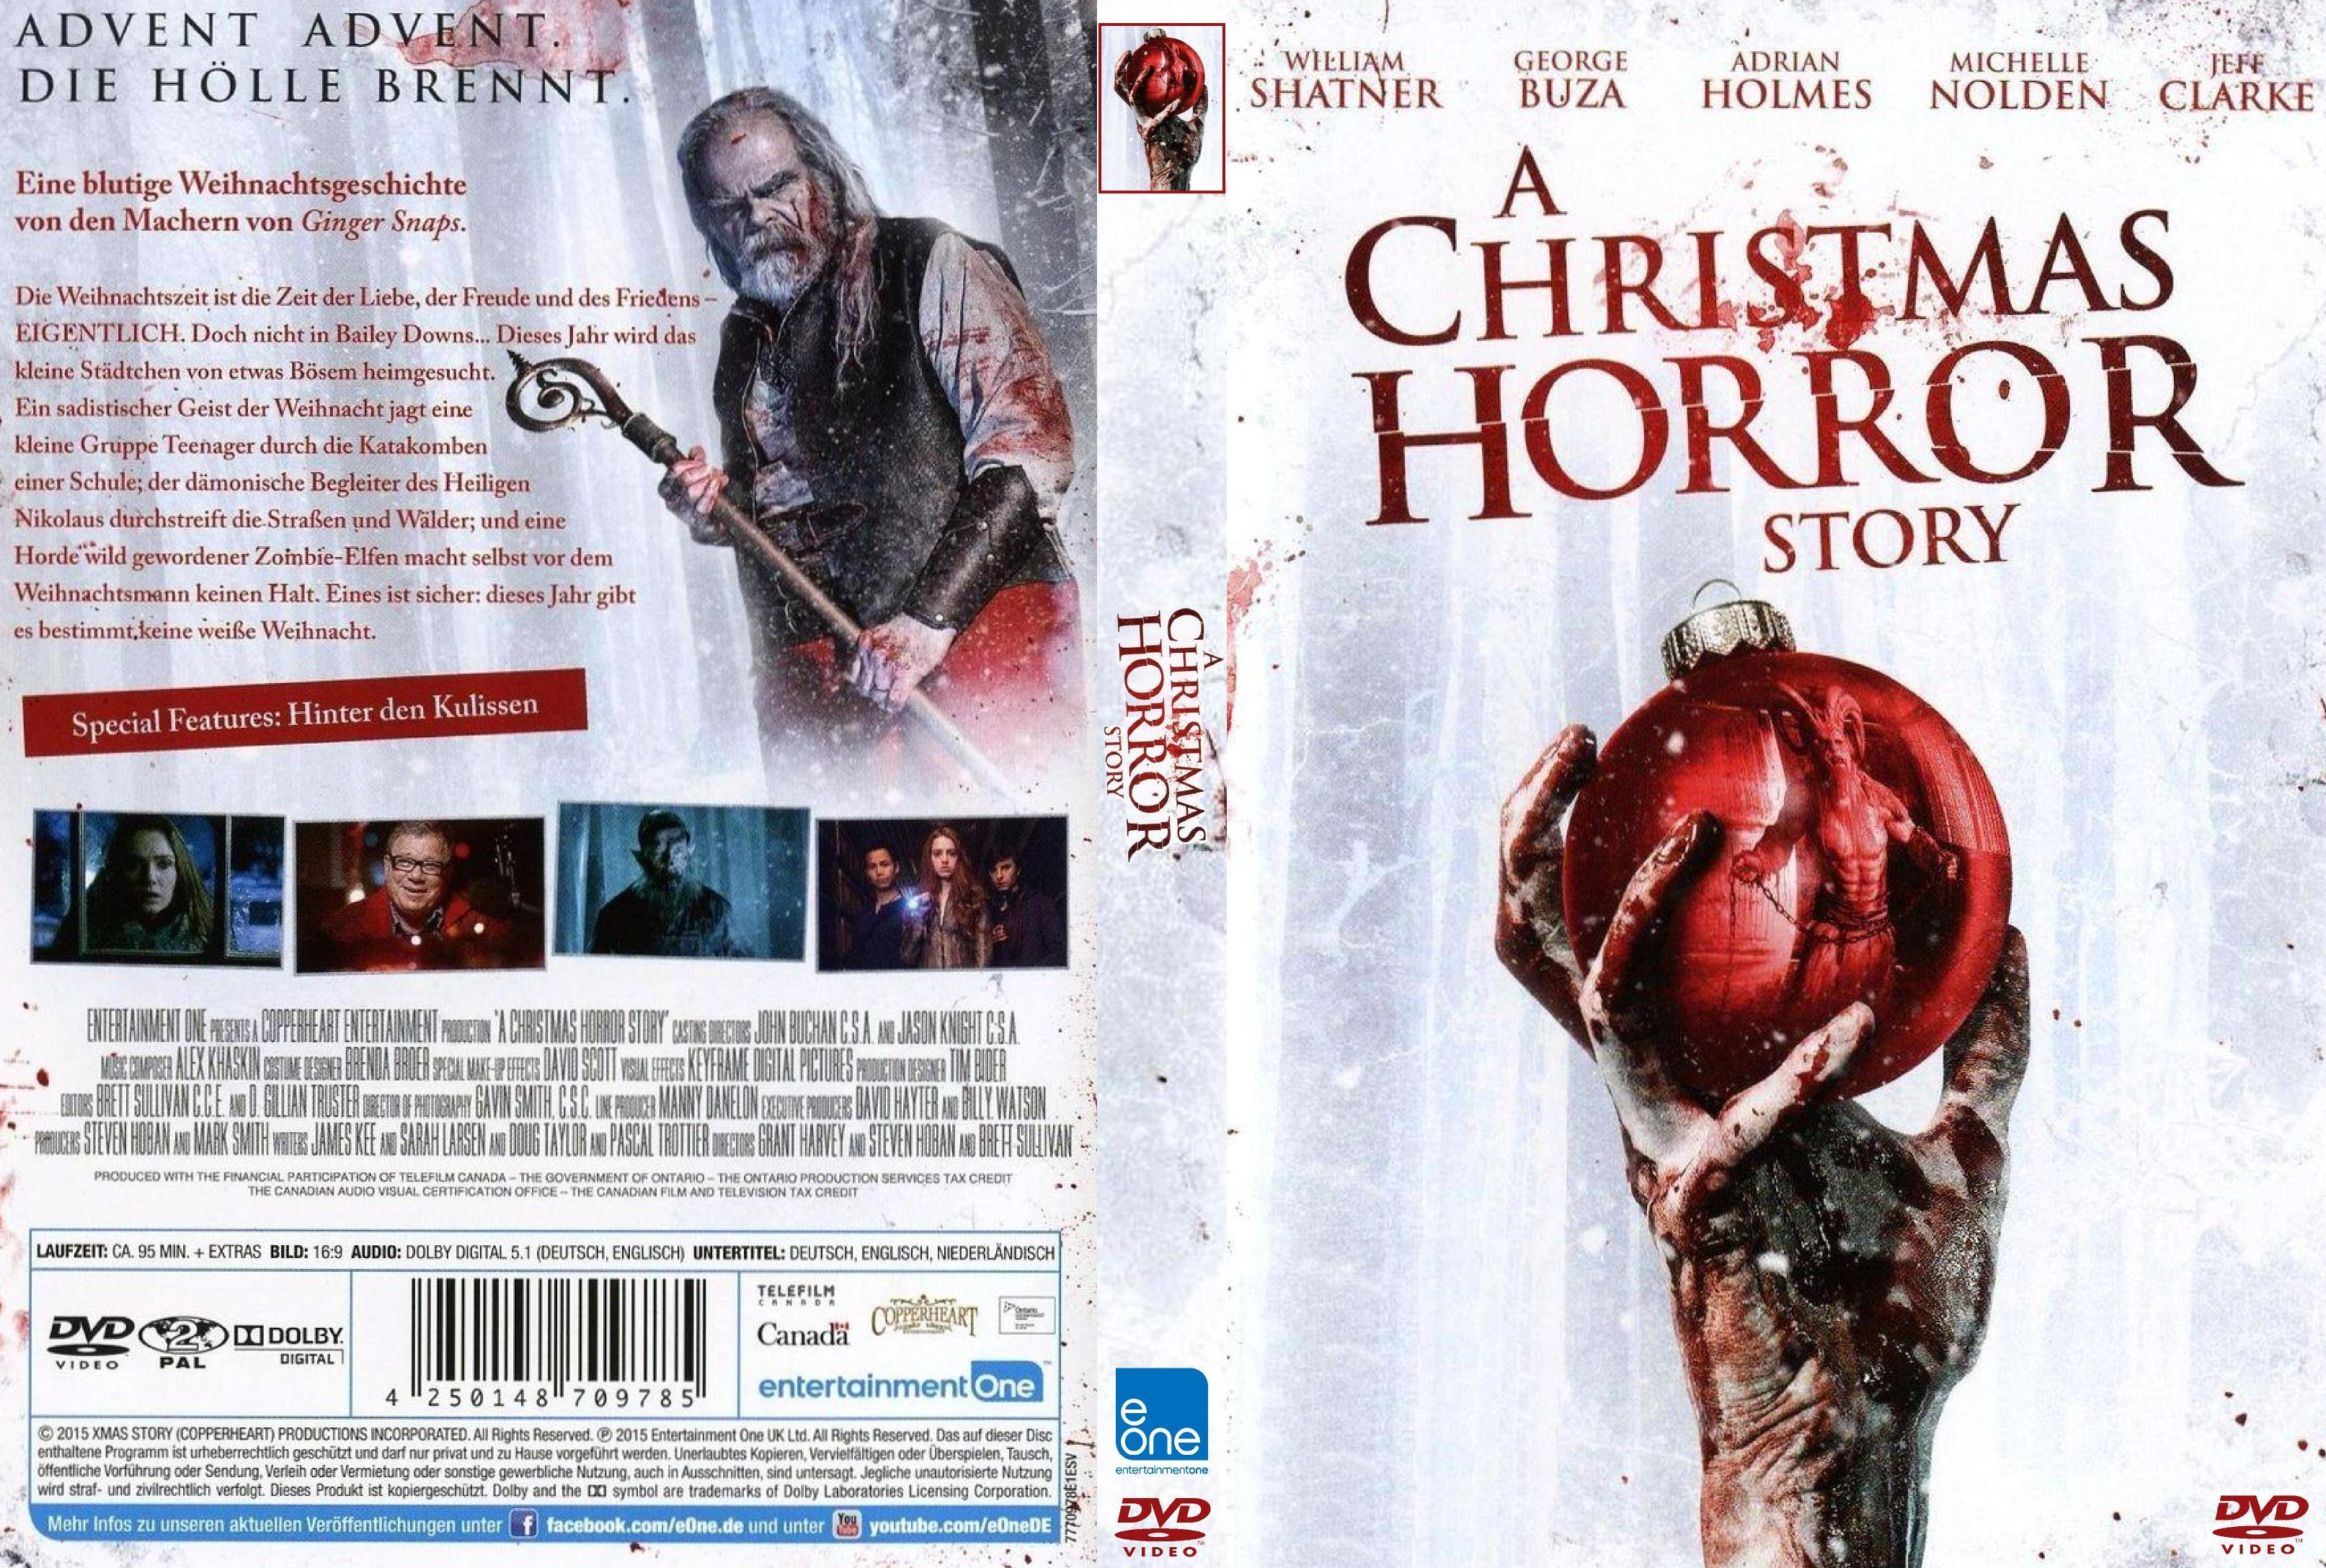 Christmas Horror Story.A Christmas Horror Story Dvd Covers Cover Century Over